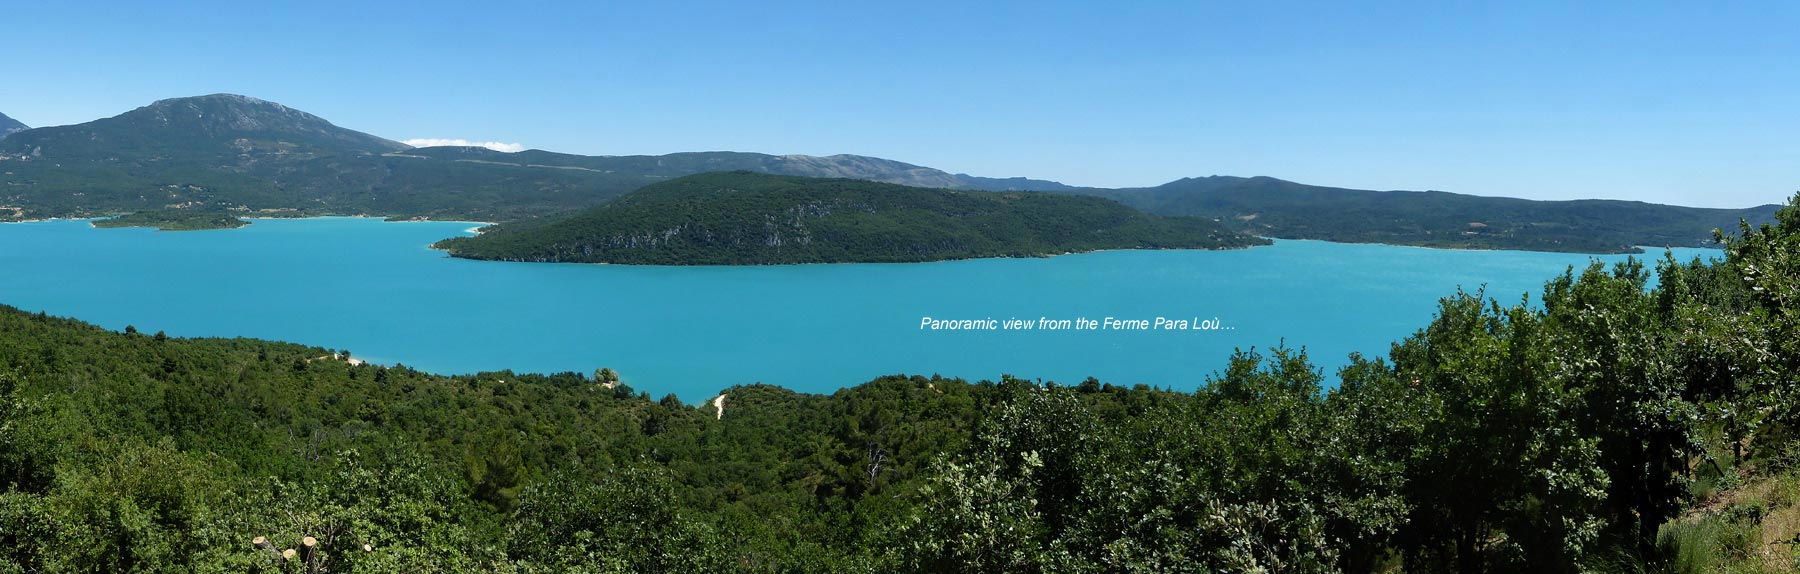 Guest rooms and holiday cottages 700 m from the lake of - Office du tourisme sainte croix du verdon ...